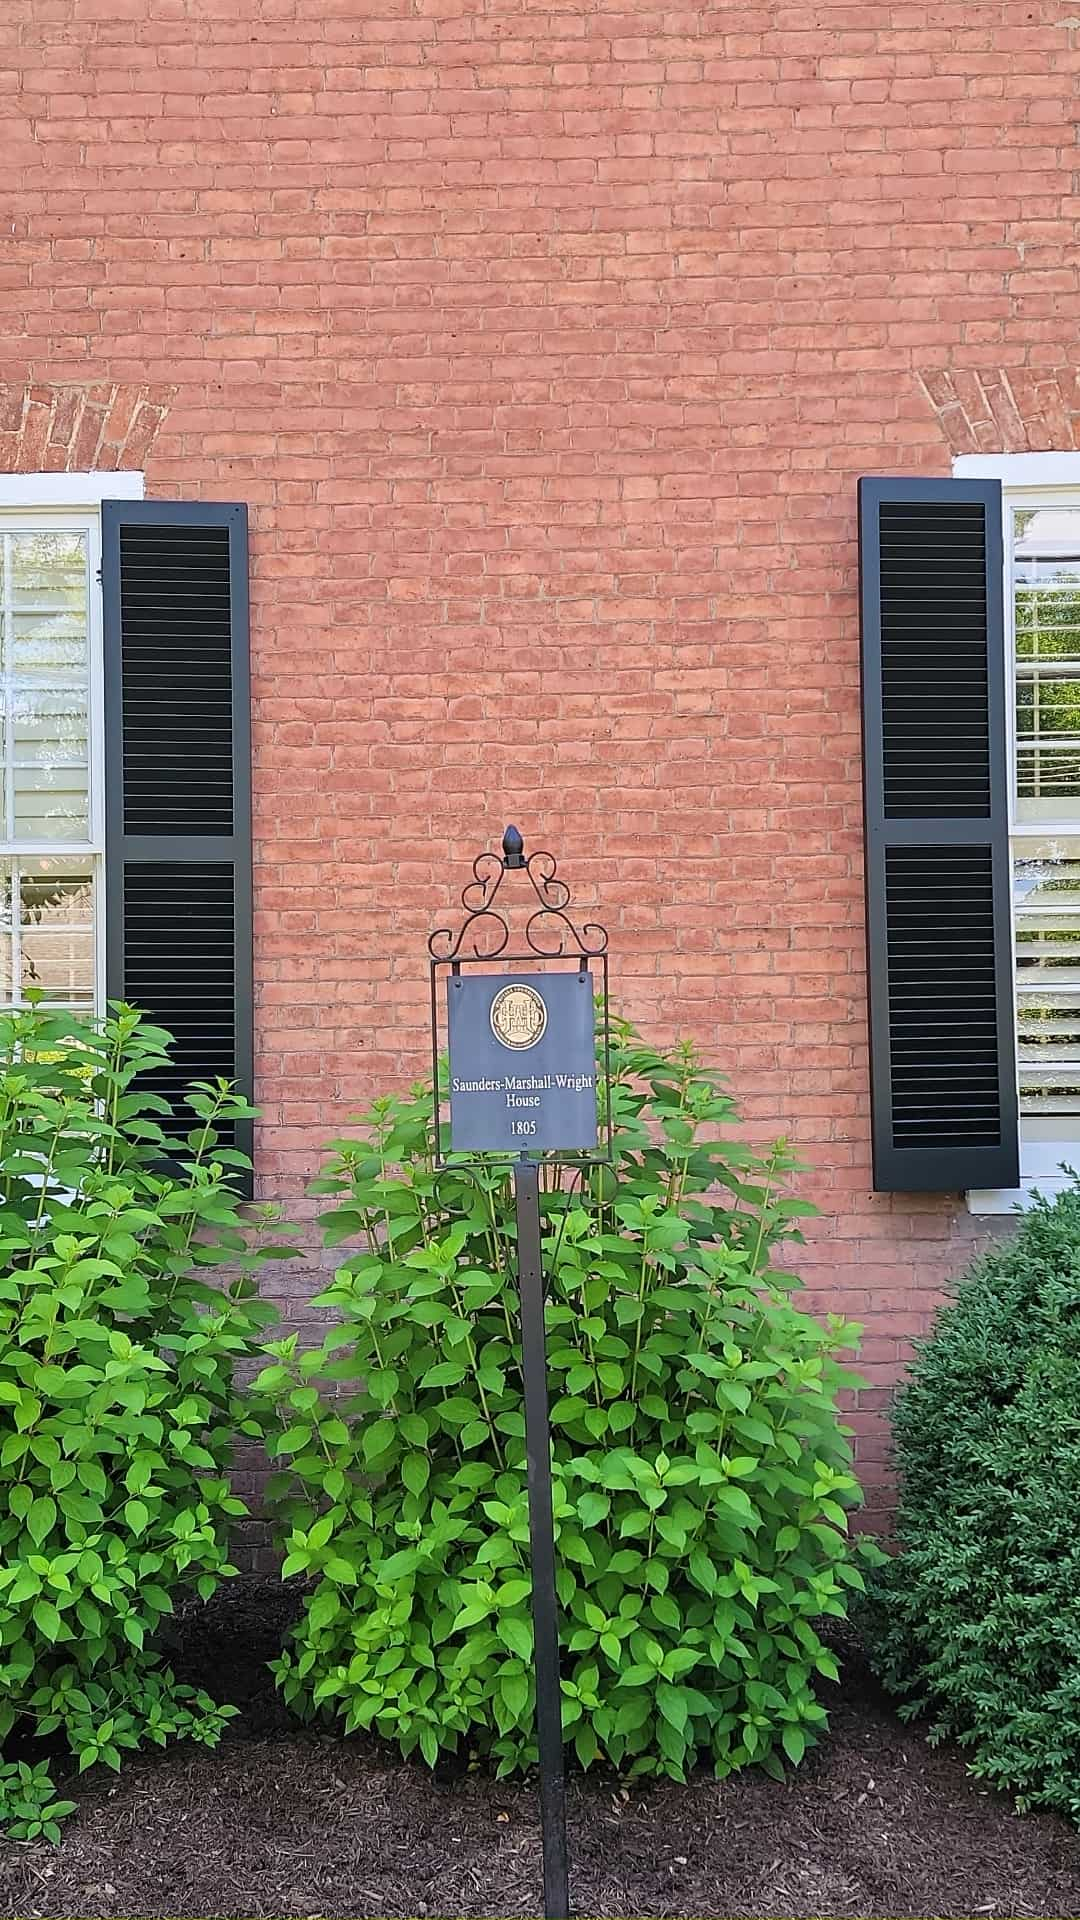 historic home with plaque in front